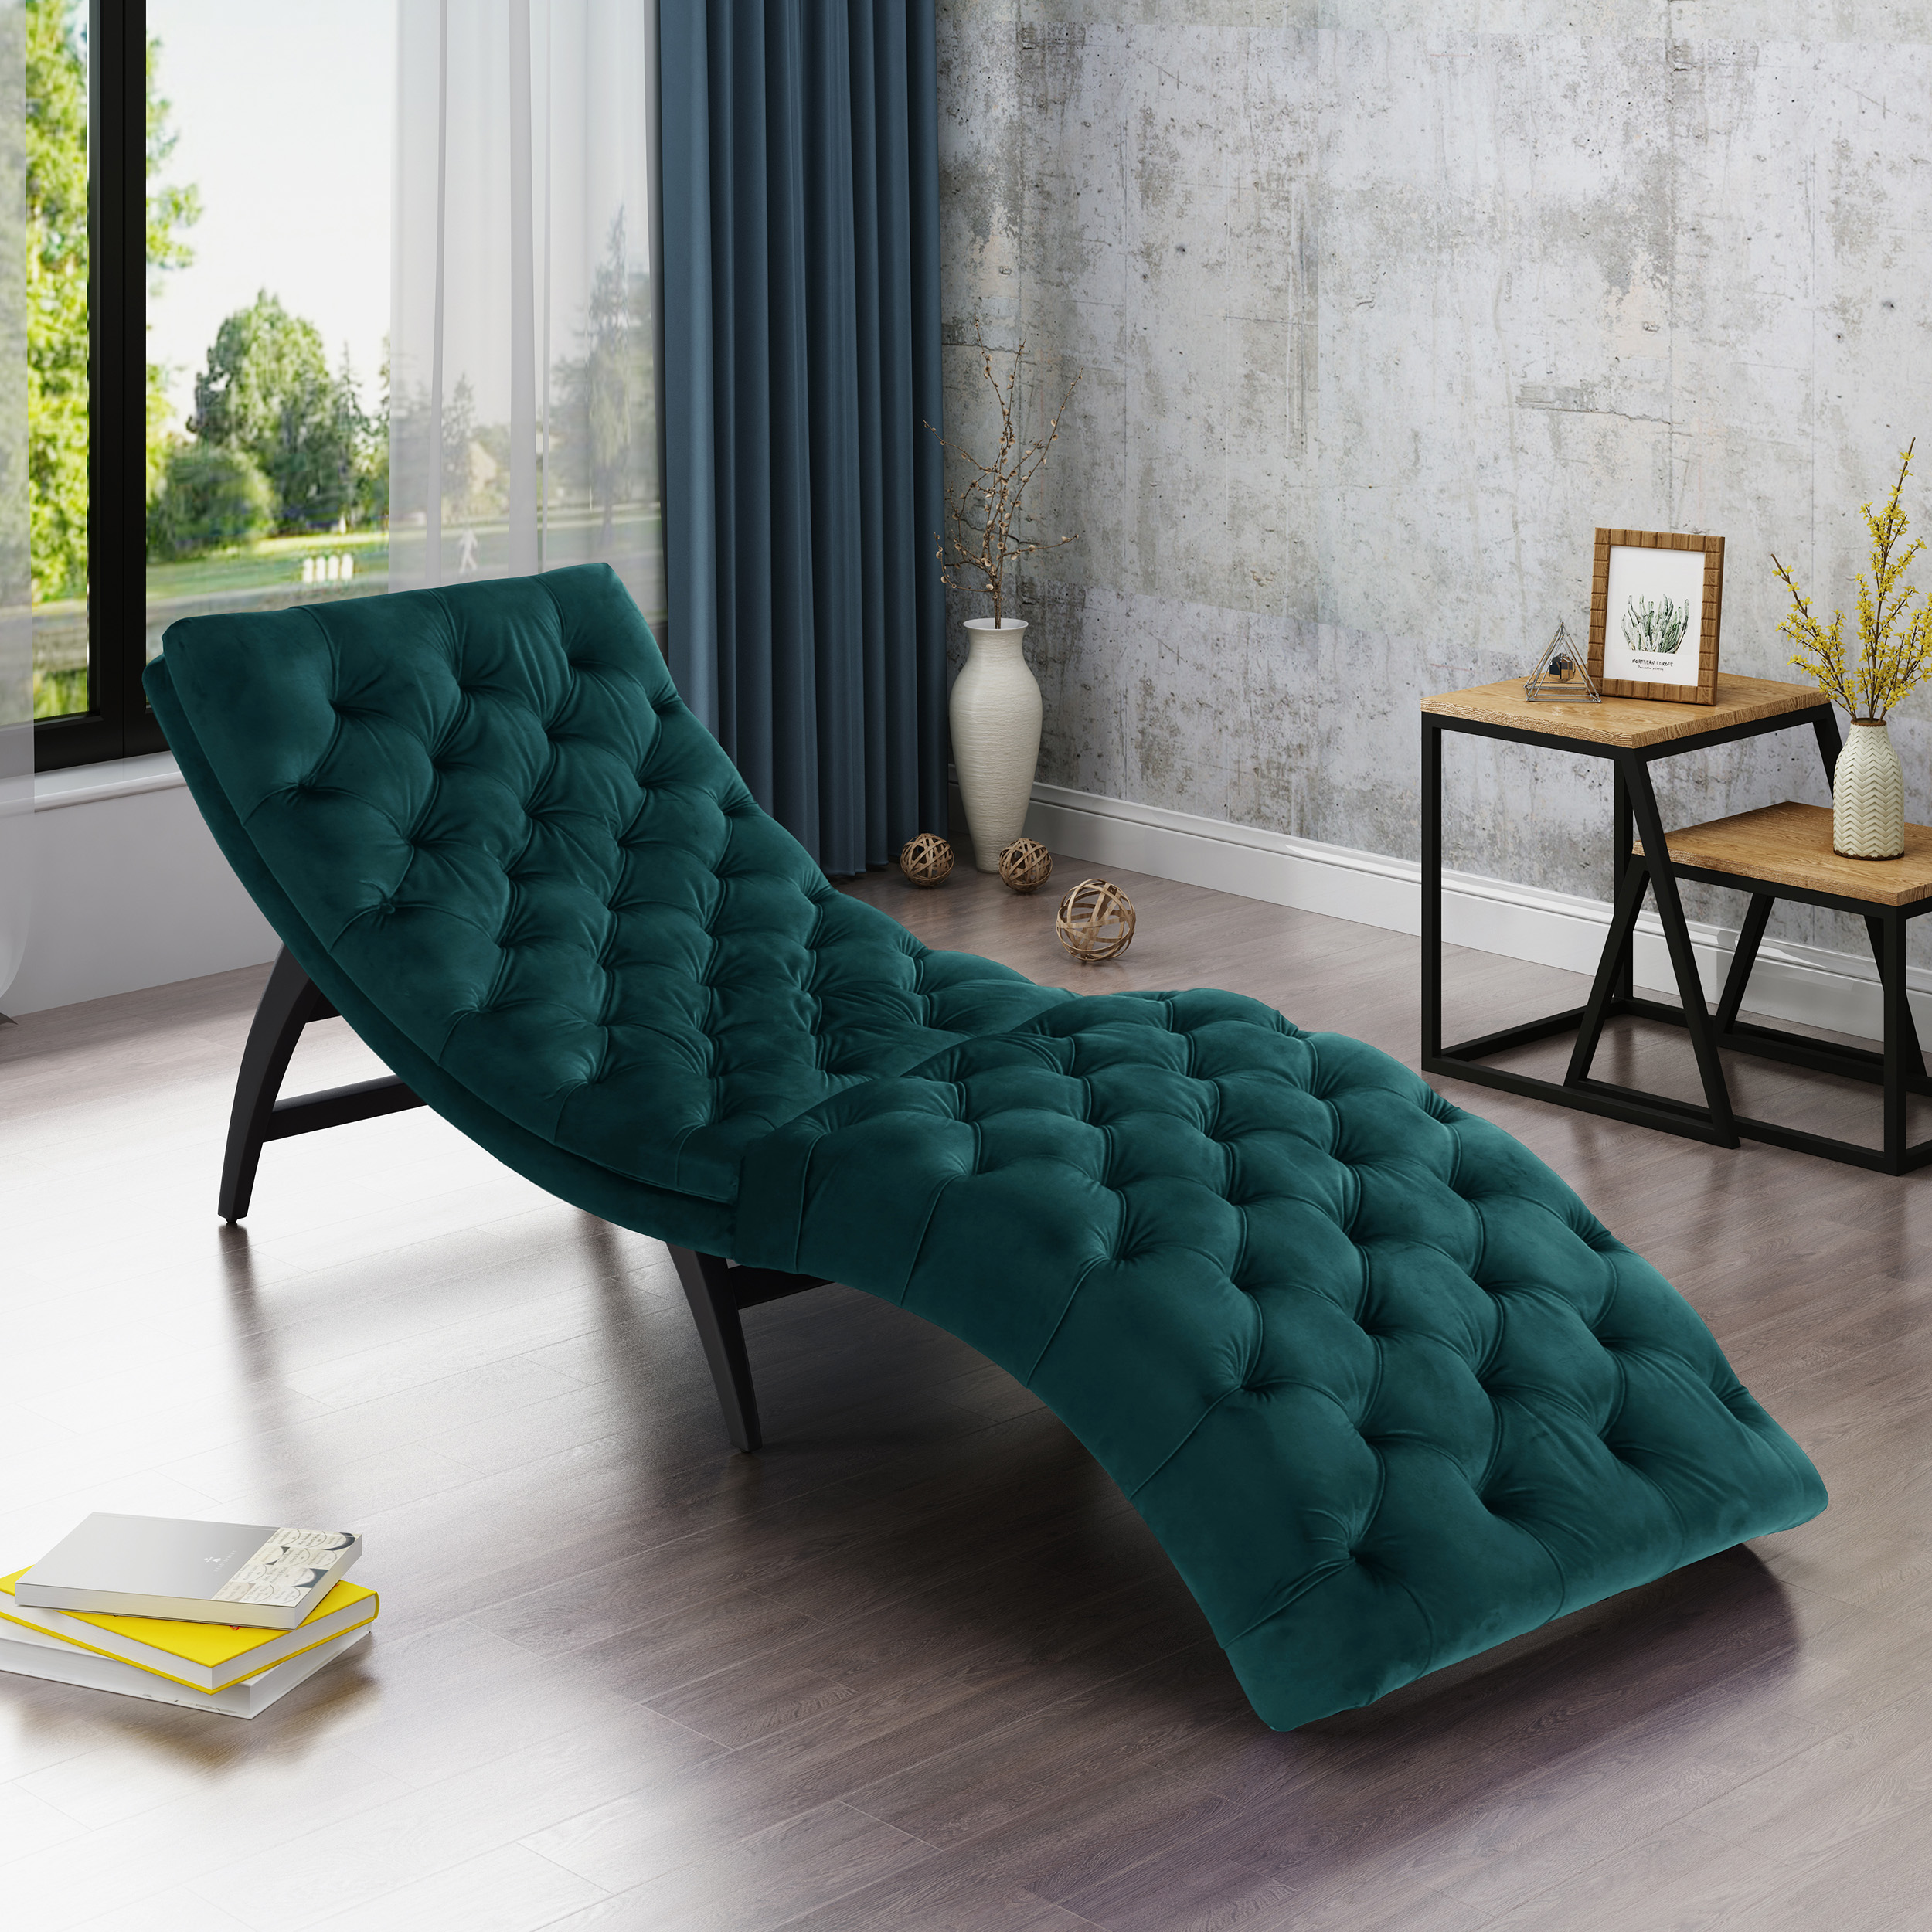 Noble House Wade Tufted New Velvet Chaise Lounge, Teal, Dark Brown